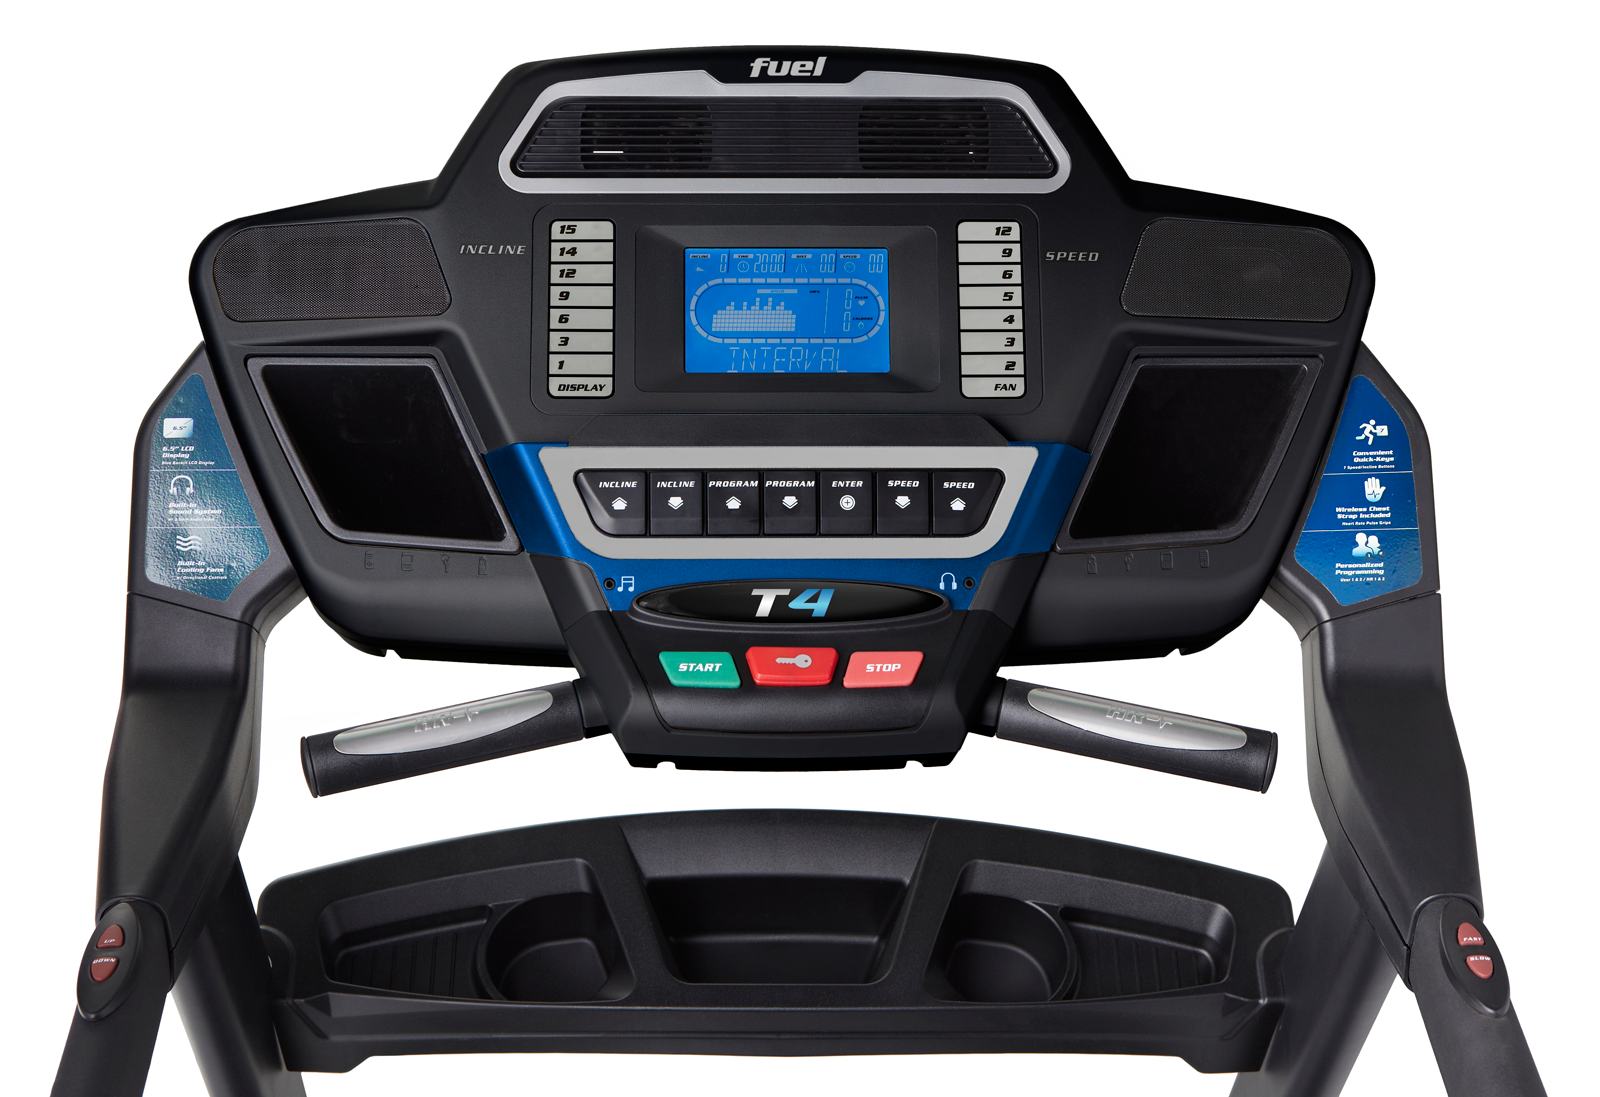 T4 Treadmill - Home Page Products